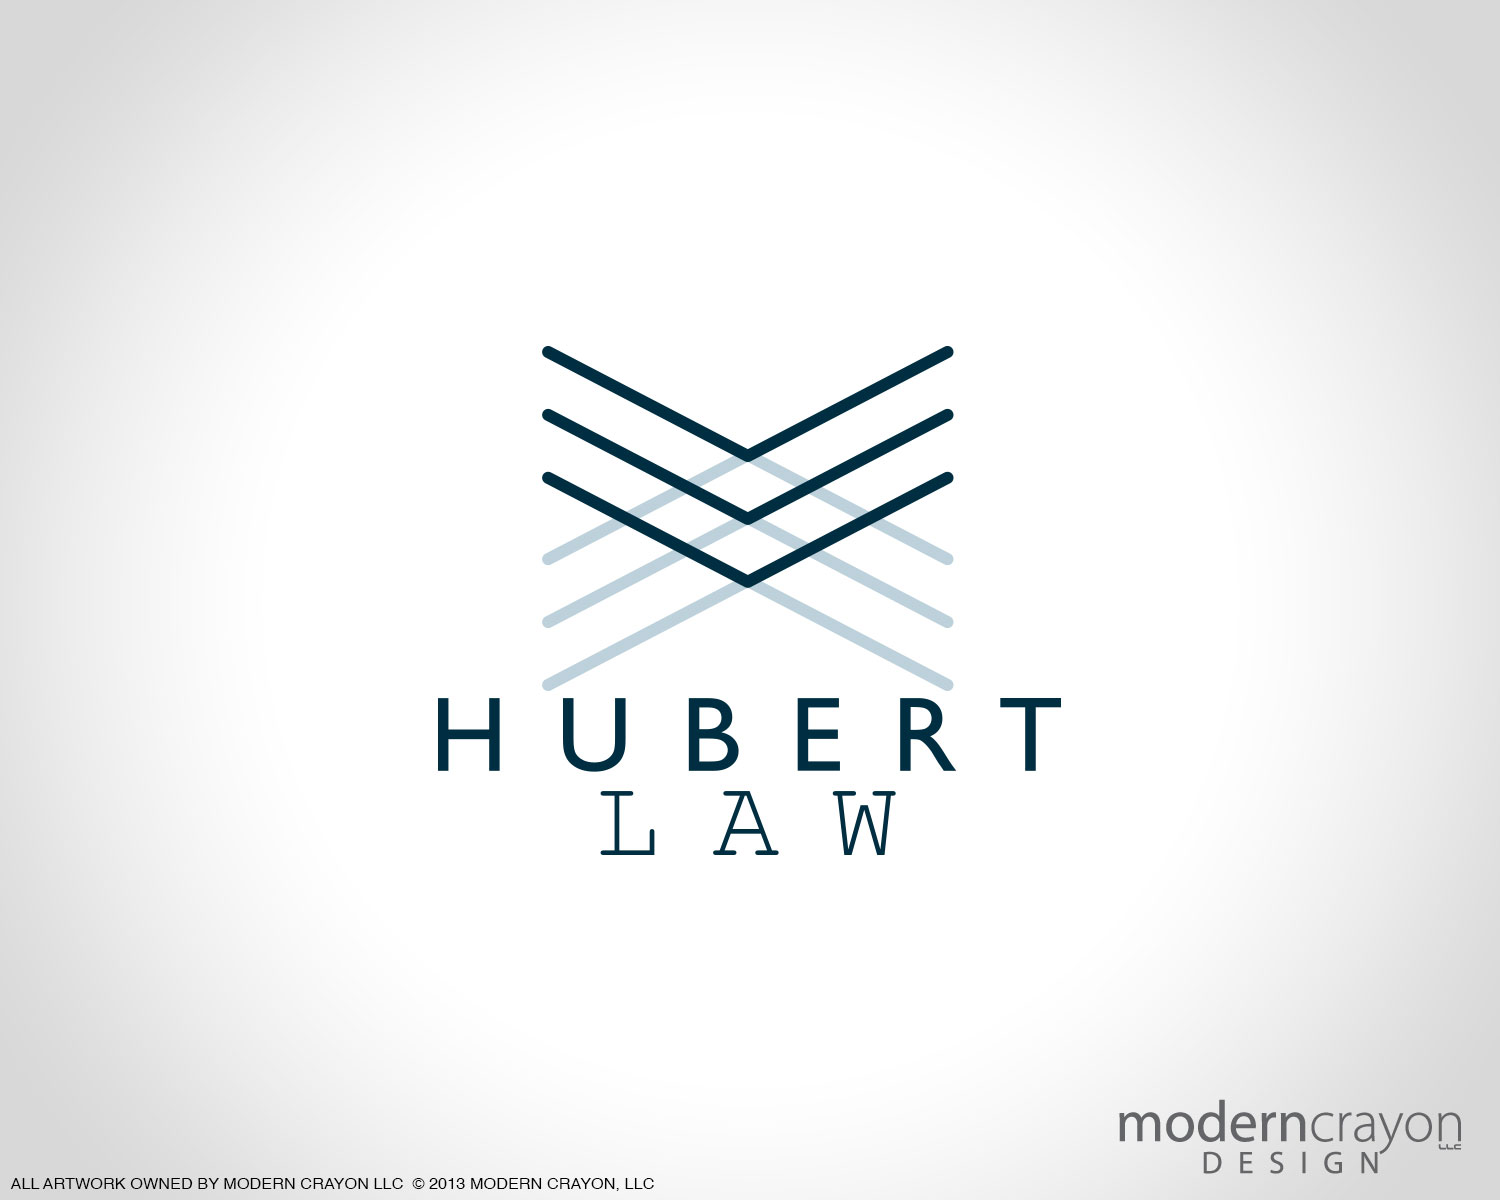 hubert law custom business cards and branding package